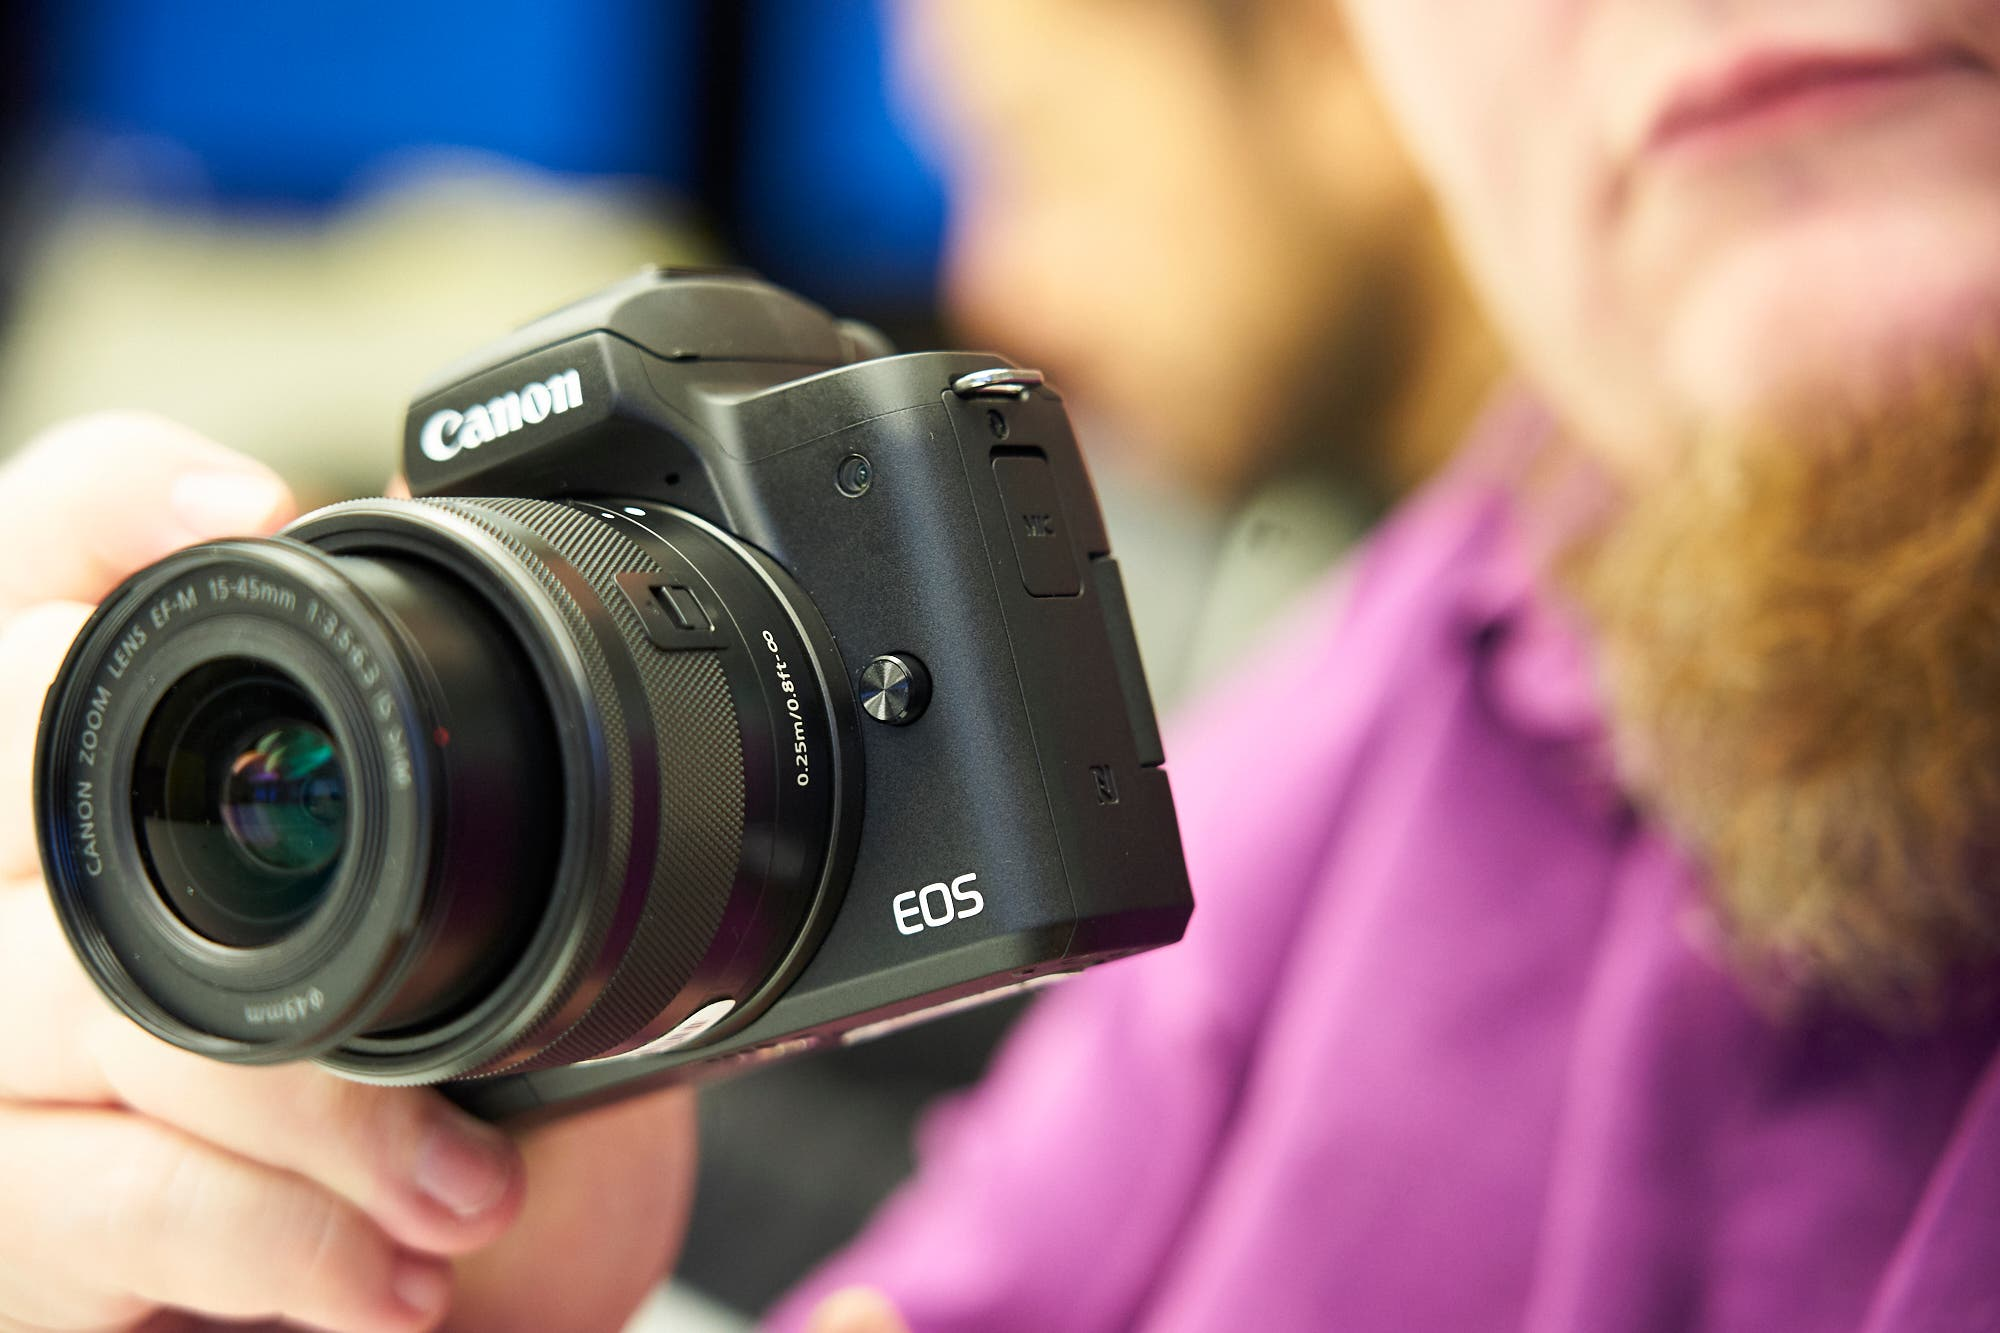 Canon's New M50 is a Bit More Exciting Than Their New Rebel T7